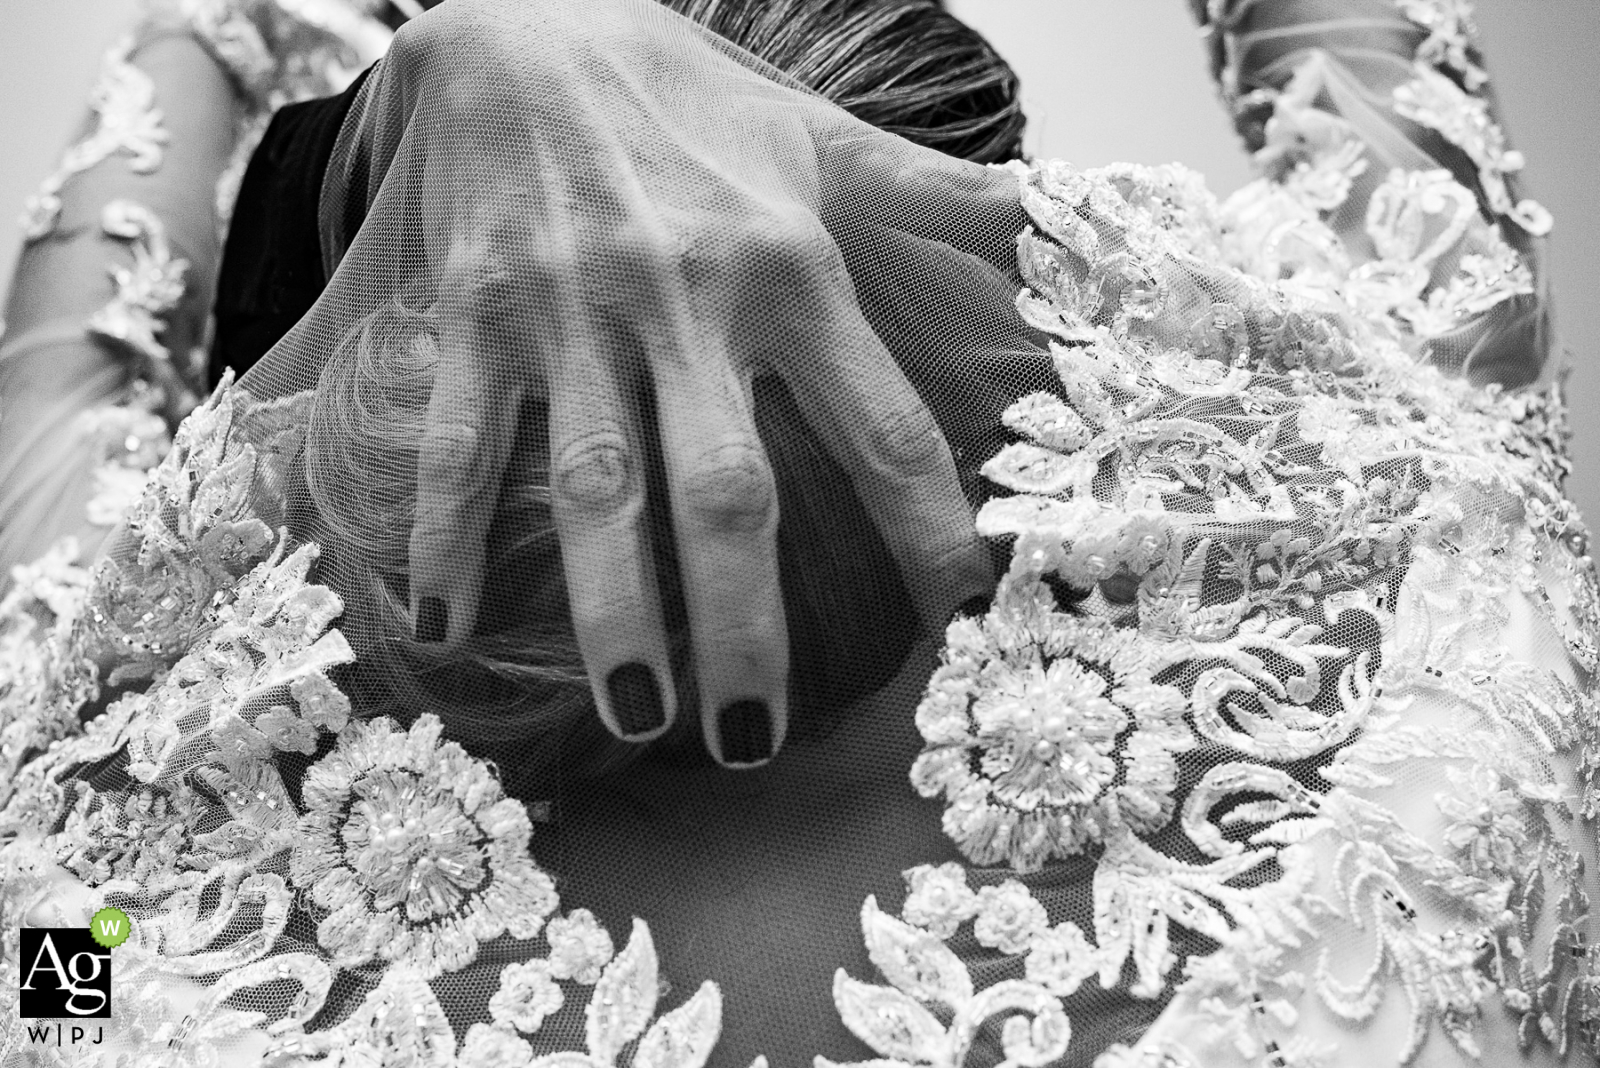 Hotel Belmond Copacabana Palace, Rio de Janeiro, Brazil fine art wedding detail photography picture showing the bride getting a helping hand while getting into her dress